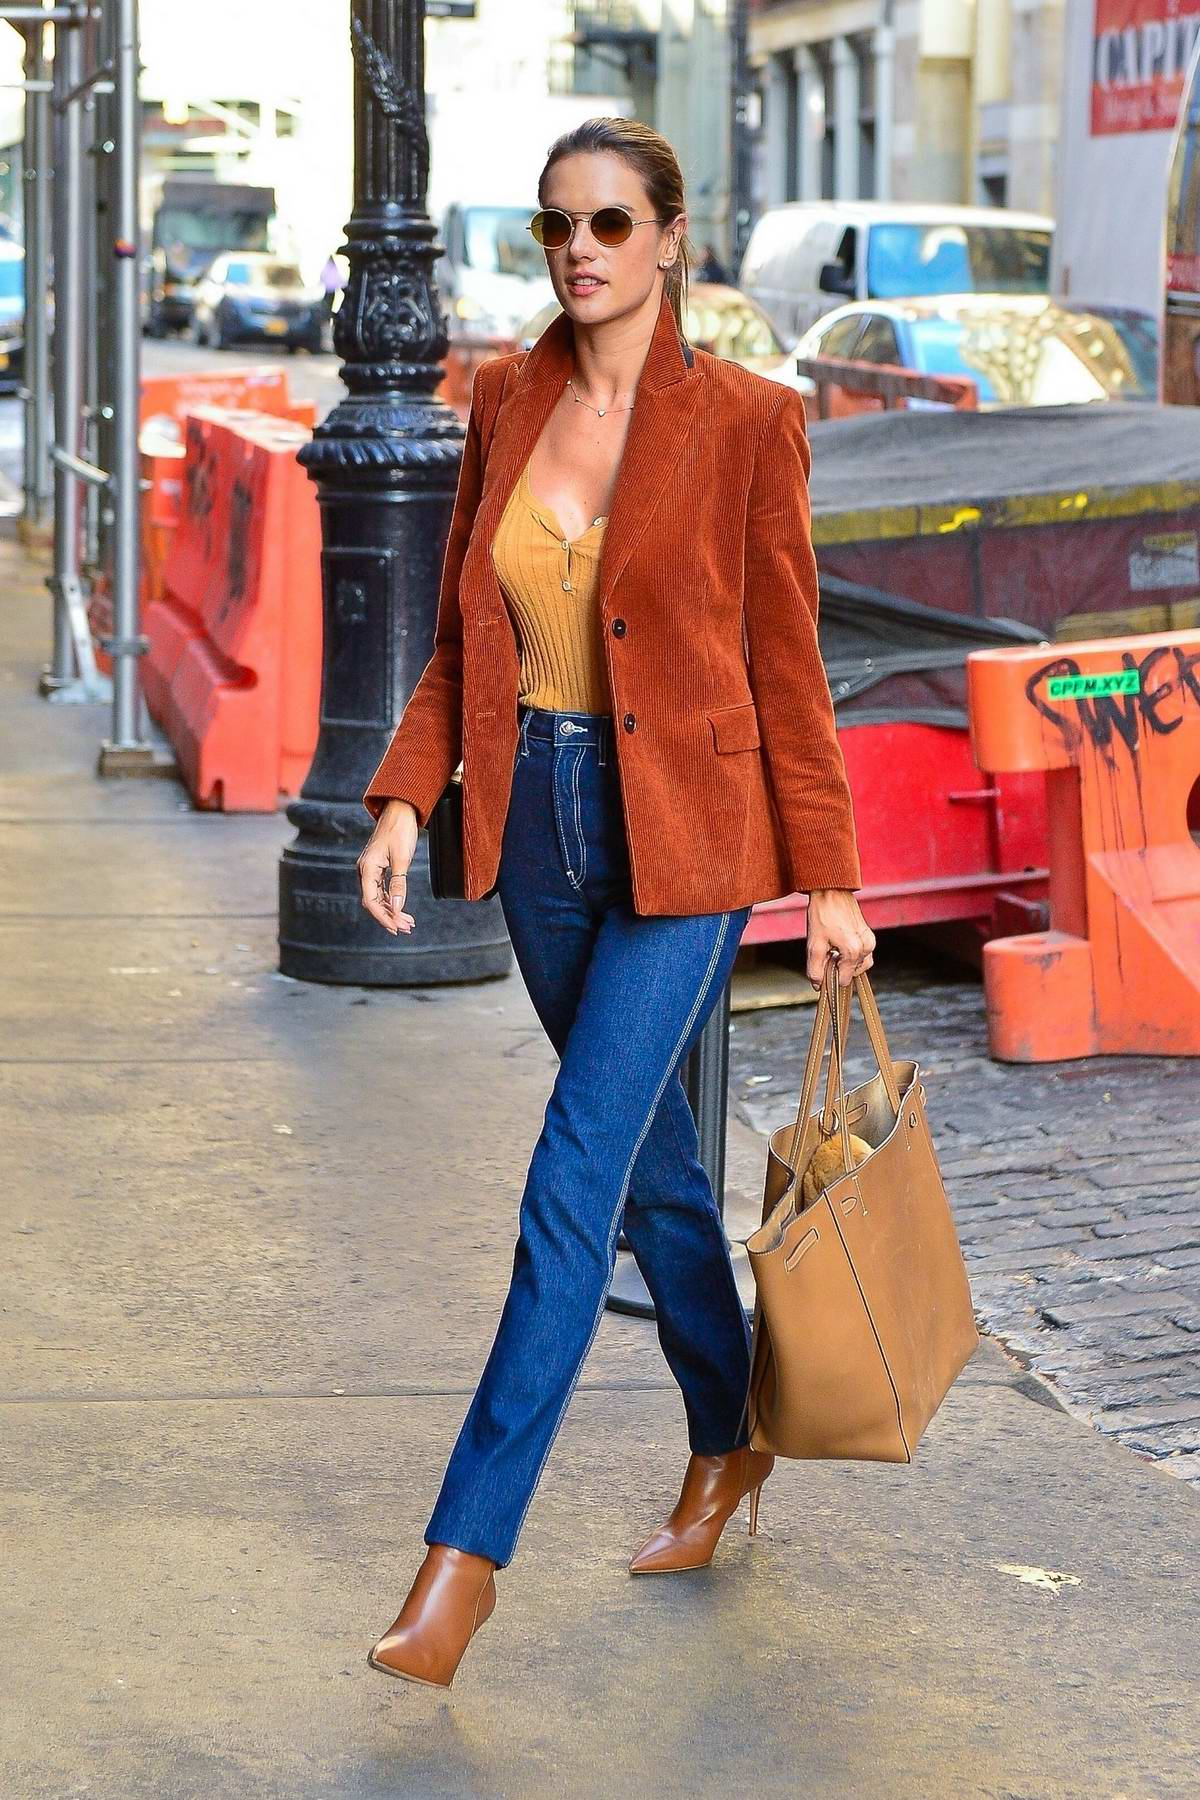 Alessandra Ambrosio looks colorful and chic while out in New York City